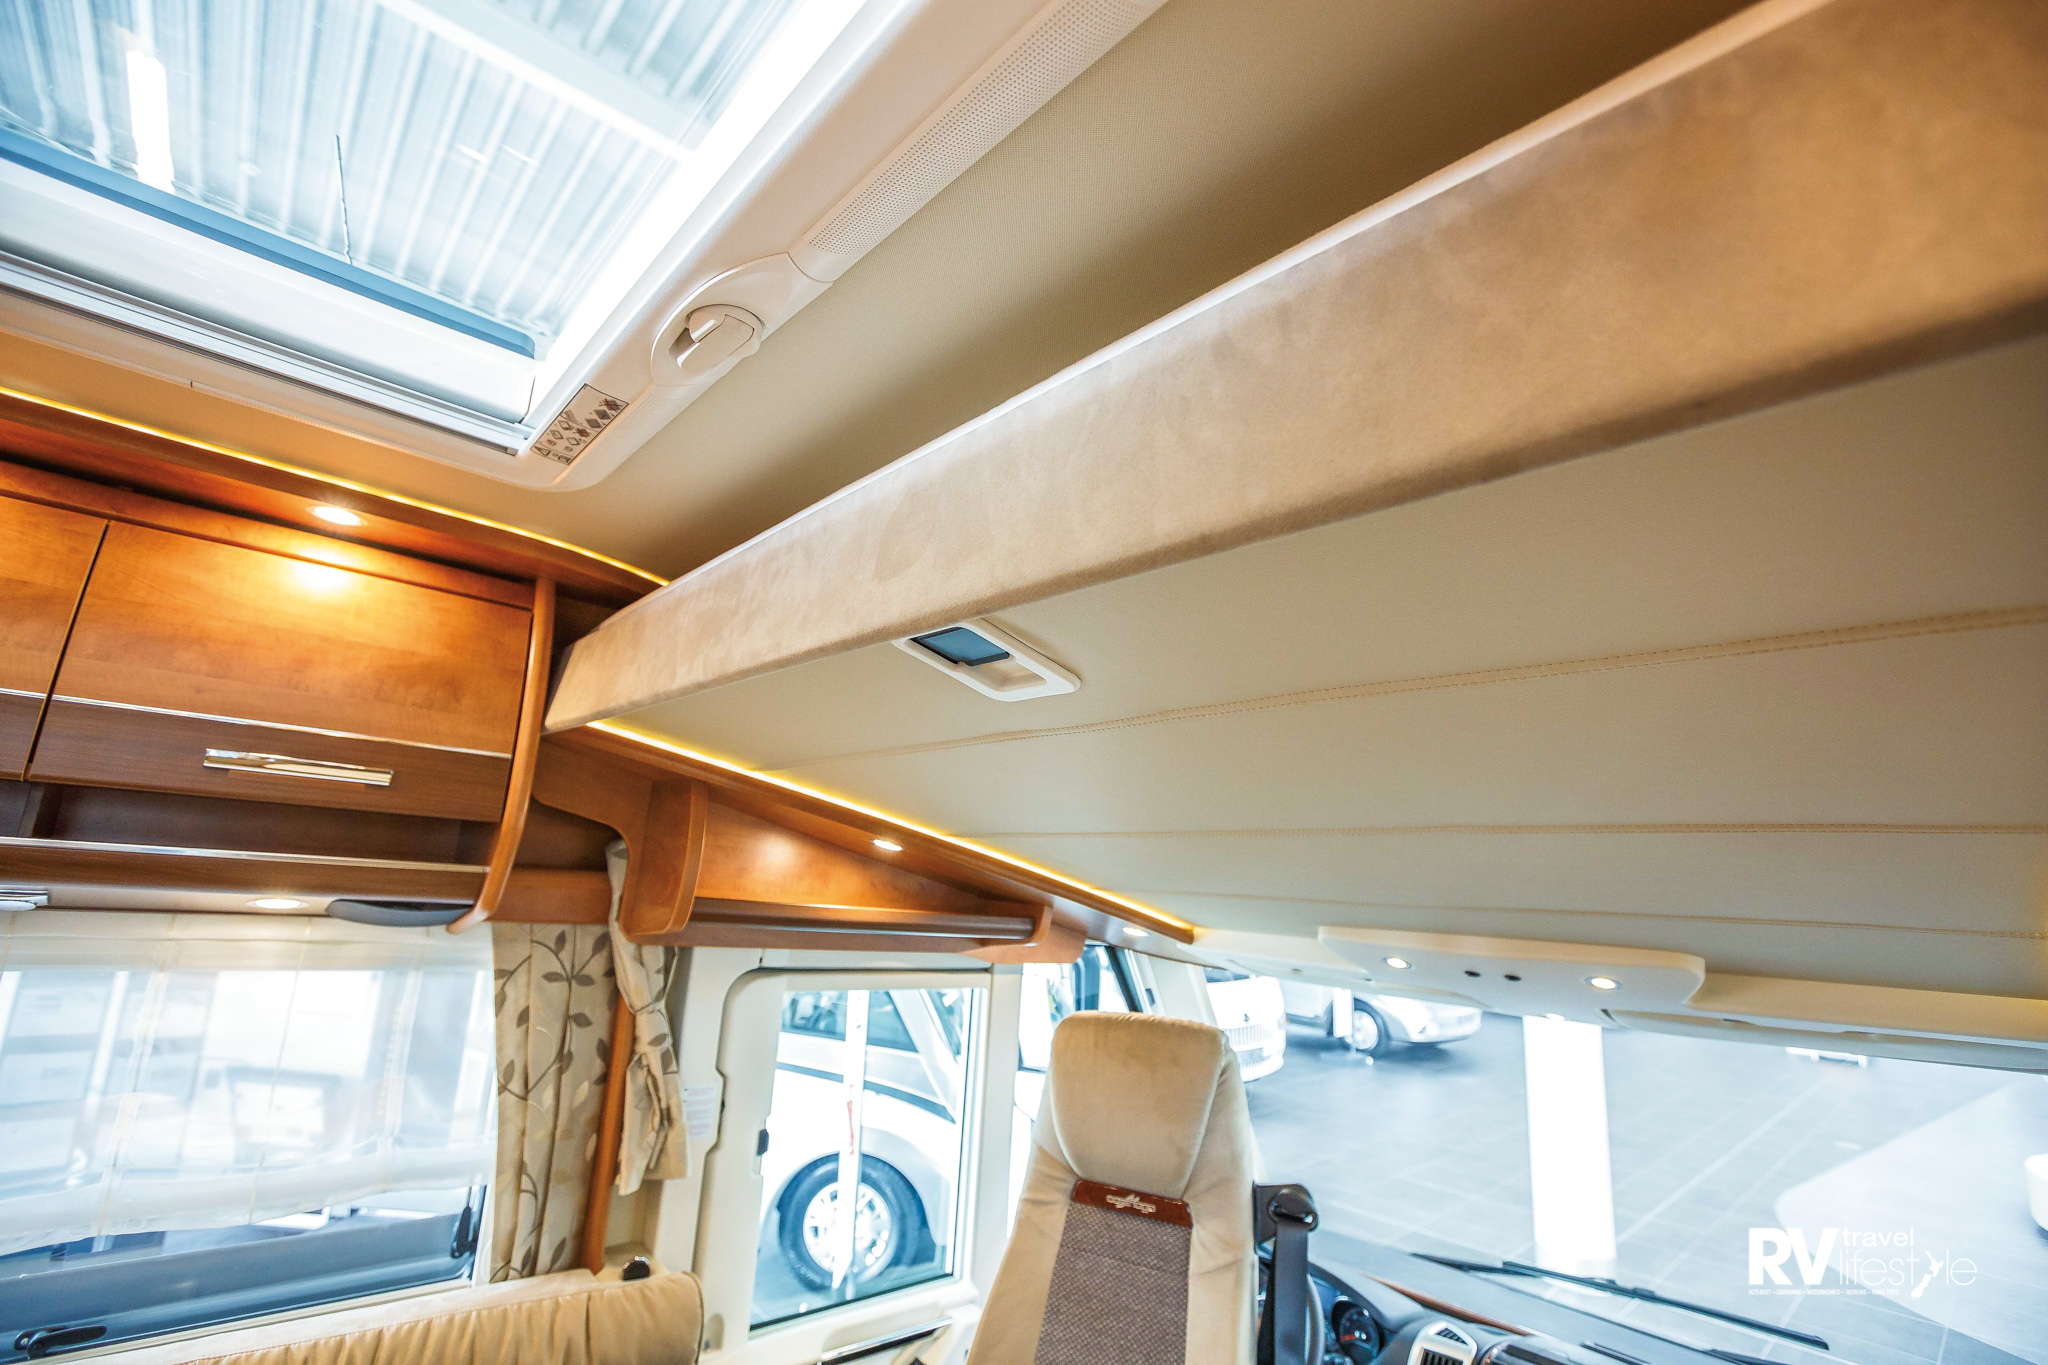 The ceiling holds the second bed, a large 1600x 1950mm bed; simply pull down as and when required. Large roof vents throughout the vehicle offer excellent light and ventilation